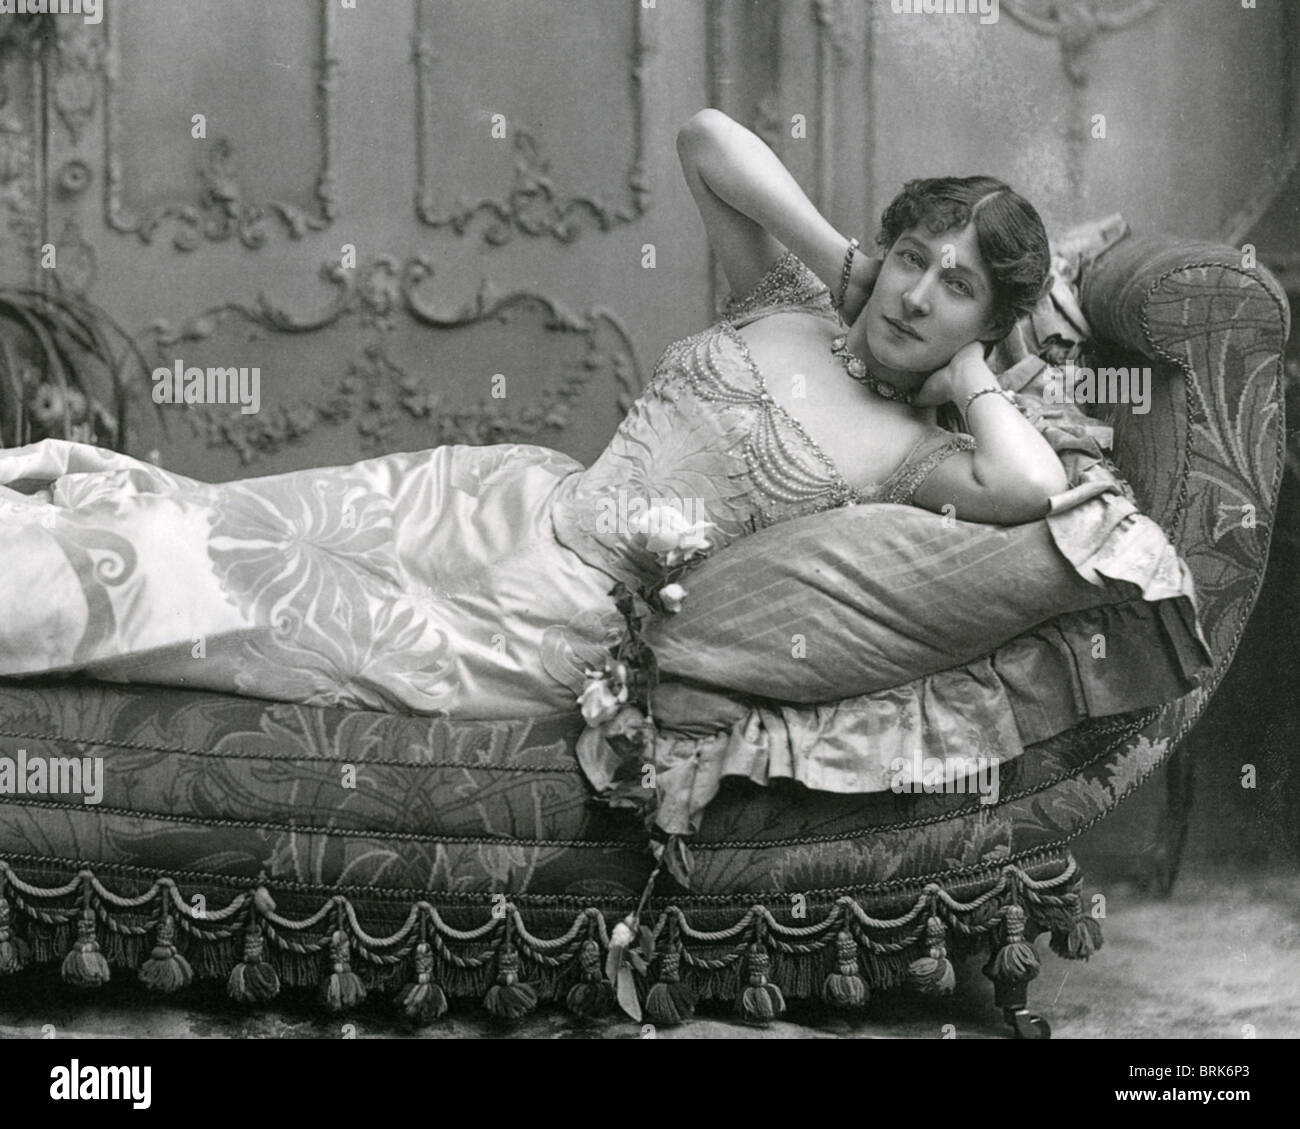 LILY LANGTRY (1853-1929)  English actress and mistress of King Edward VII - Stock Image